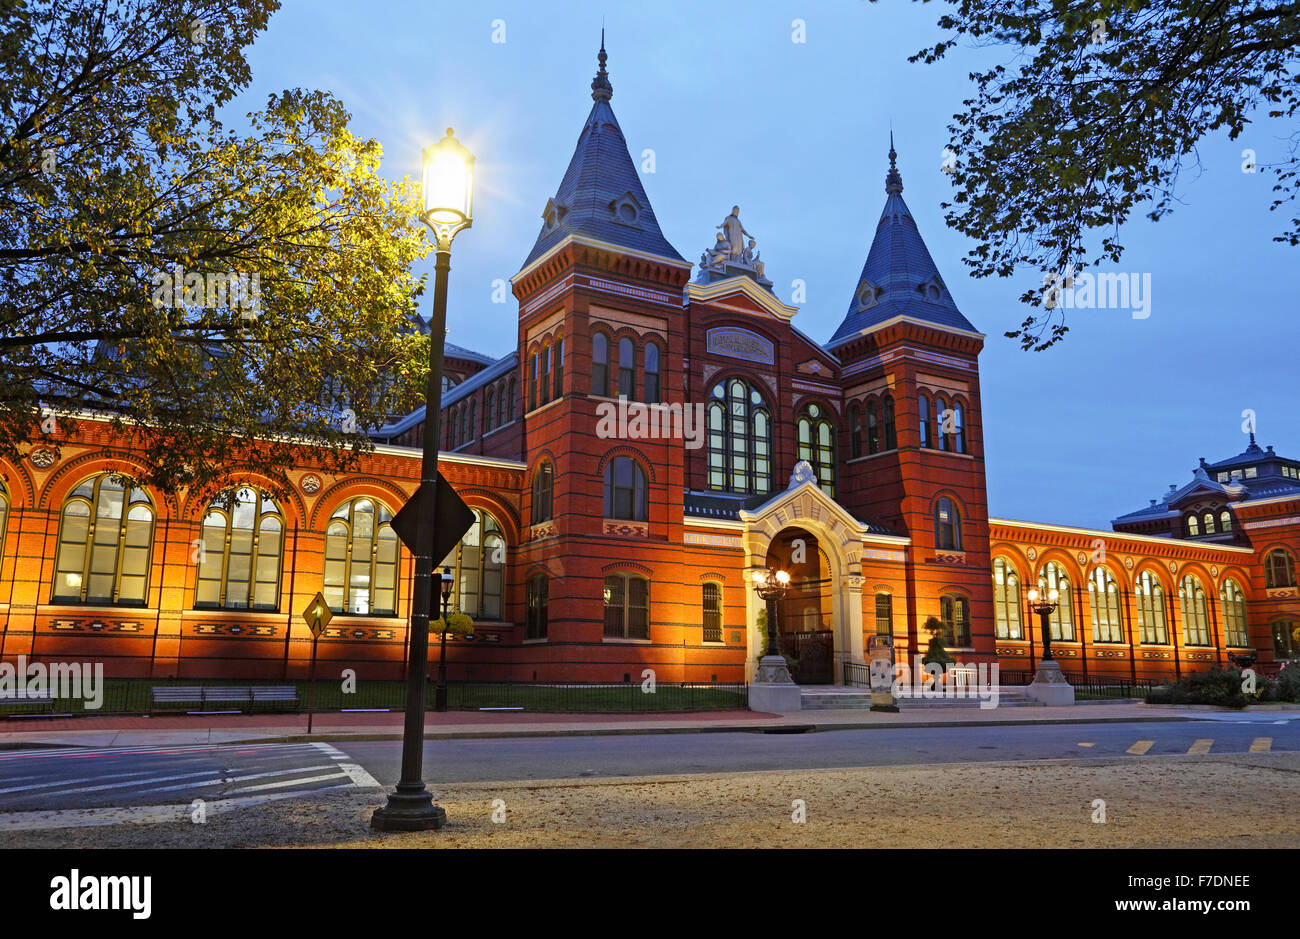 Arts and Industries building, Smithsonian Institution in Washington DC. Formerly the National Museum. - Stock Image